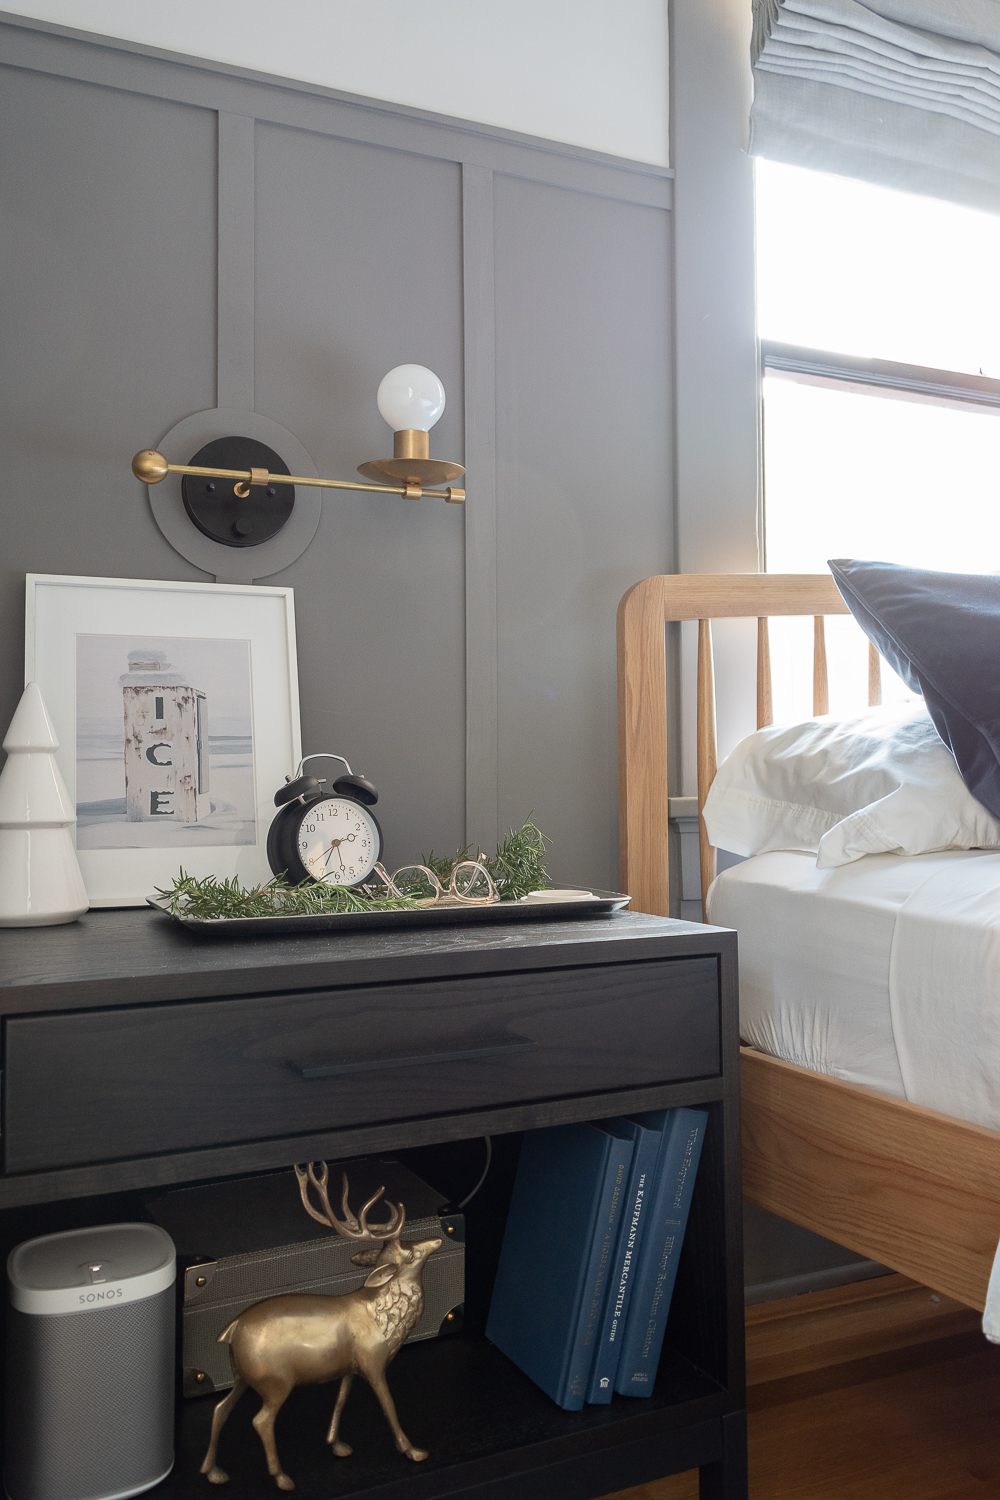 Bedside Holiday Decor for Christmas and Winter-0163.jpg